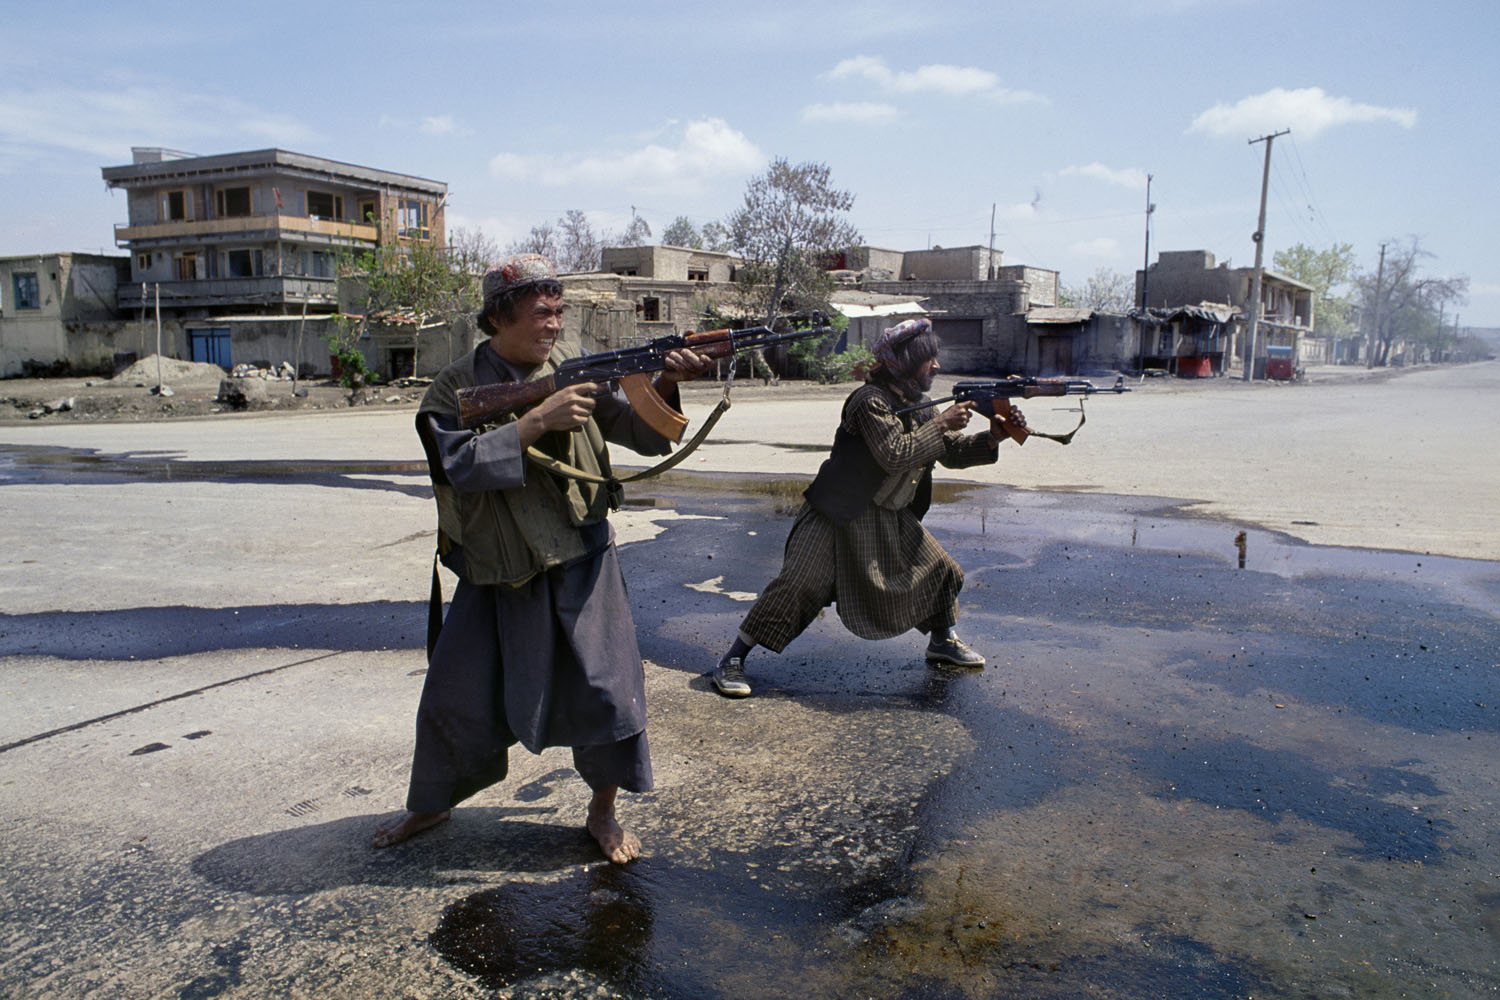 Two Uzbek fighters under the control of Afghan General Abdul Rashid Dostum fire on Hezbi-Islami forces of Gulbuddin Hekmatyar in the SW part of Kabul during the mujahideen takeover of Kabul. April, 1992.